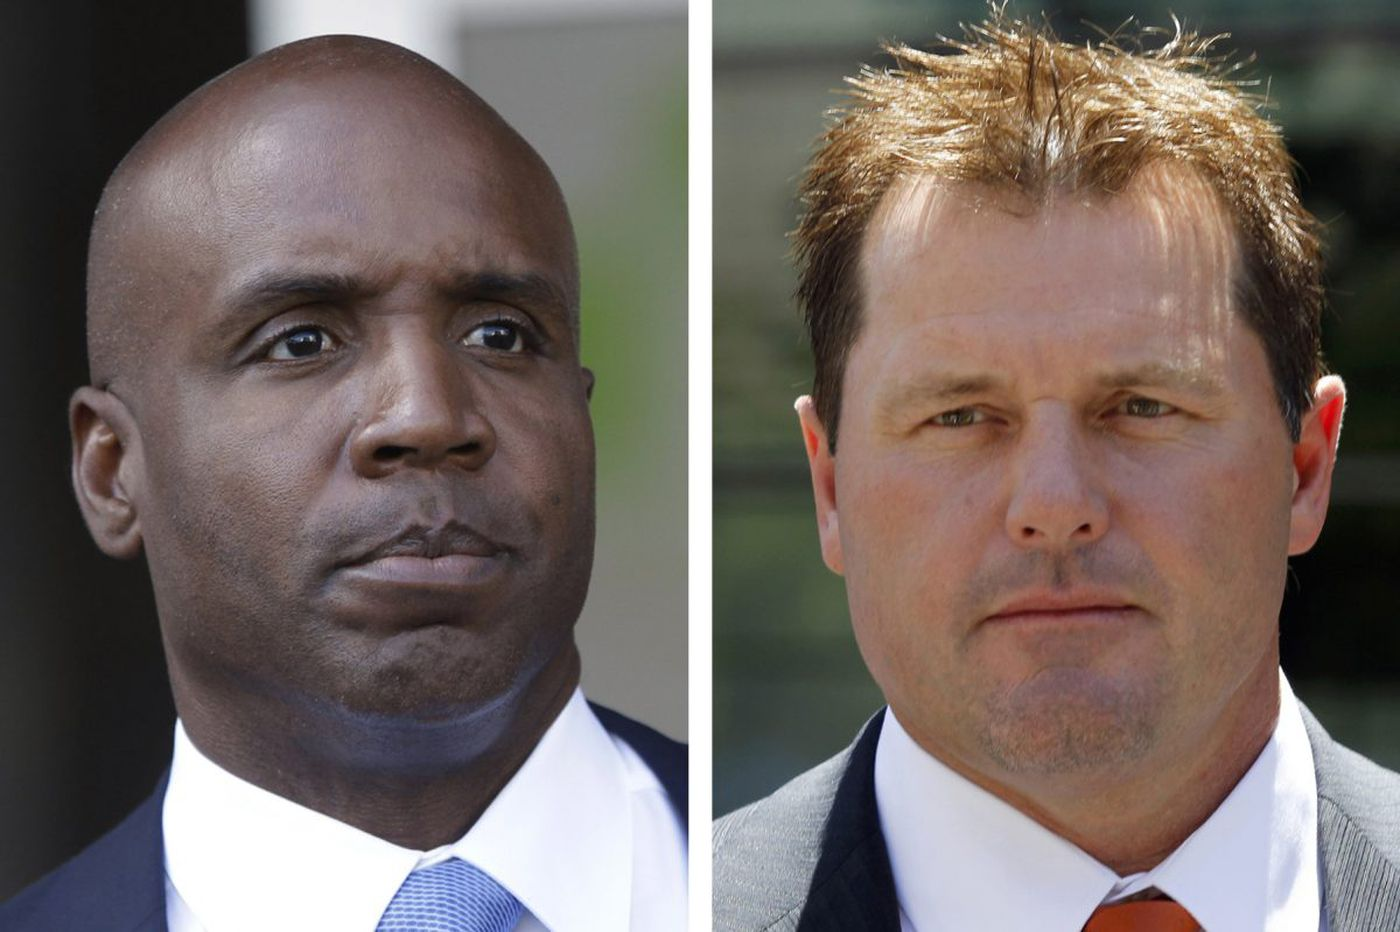 Barry Bonds and Roger Clemens not worthy of baseball immortality | Opinion